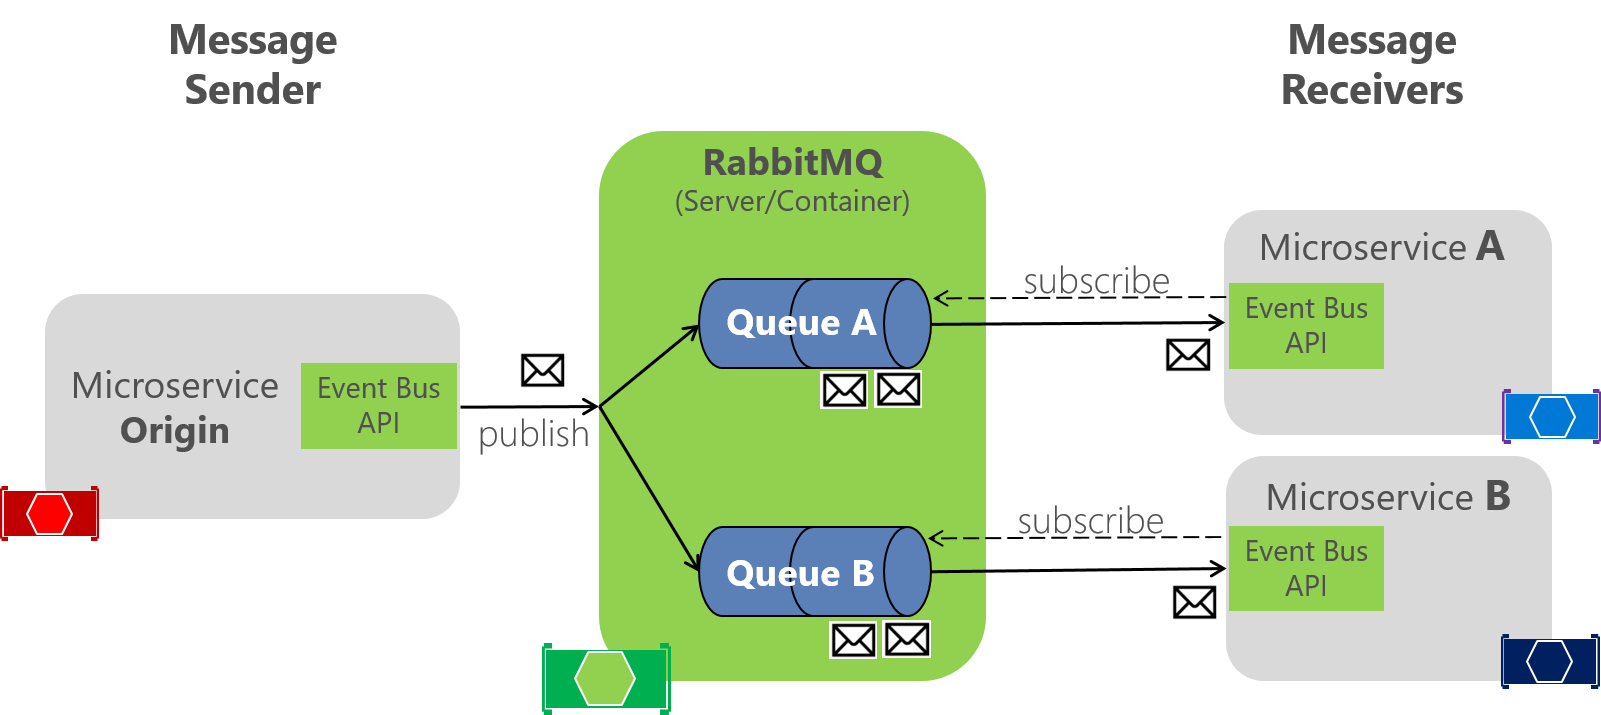 Implementing an event bus with RabbitMQ for the development